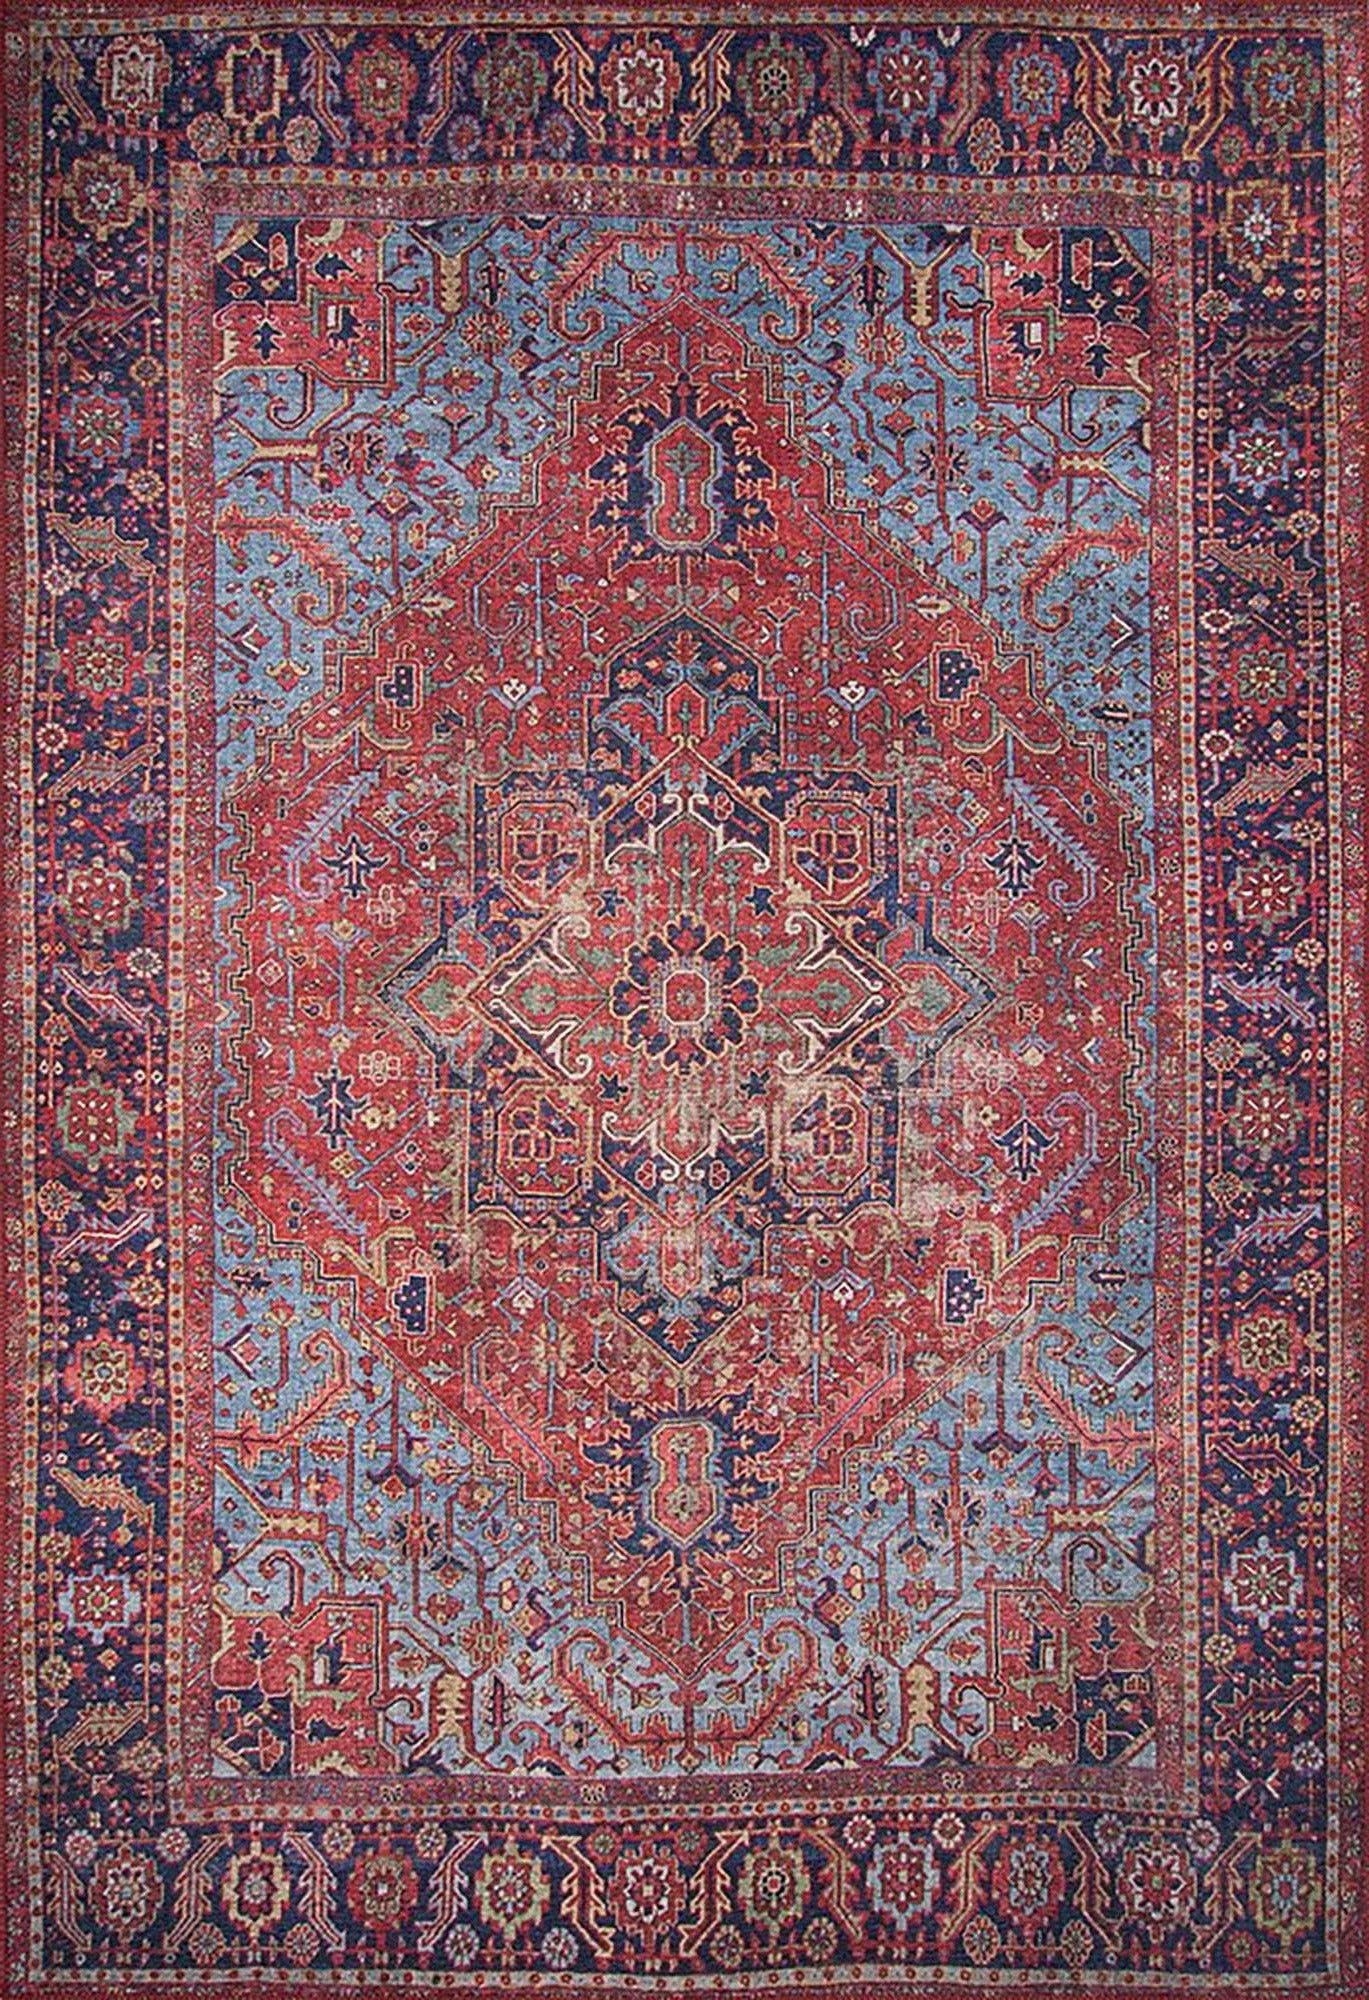 HANDA | Heriz Design, Oriental rug, Persian Pattern, Antique Hand knotted looks, Home decor, Central Medallion, Light & Navy Blue, Red, Rugs